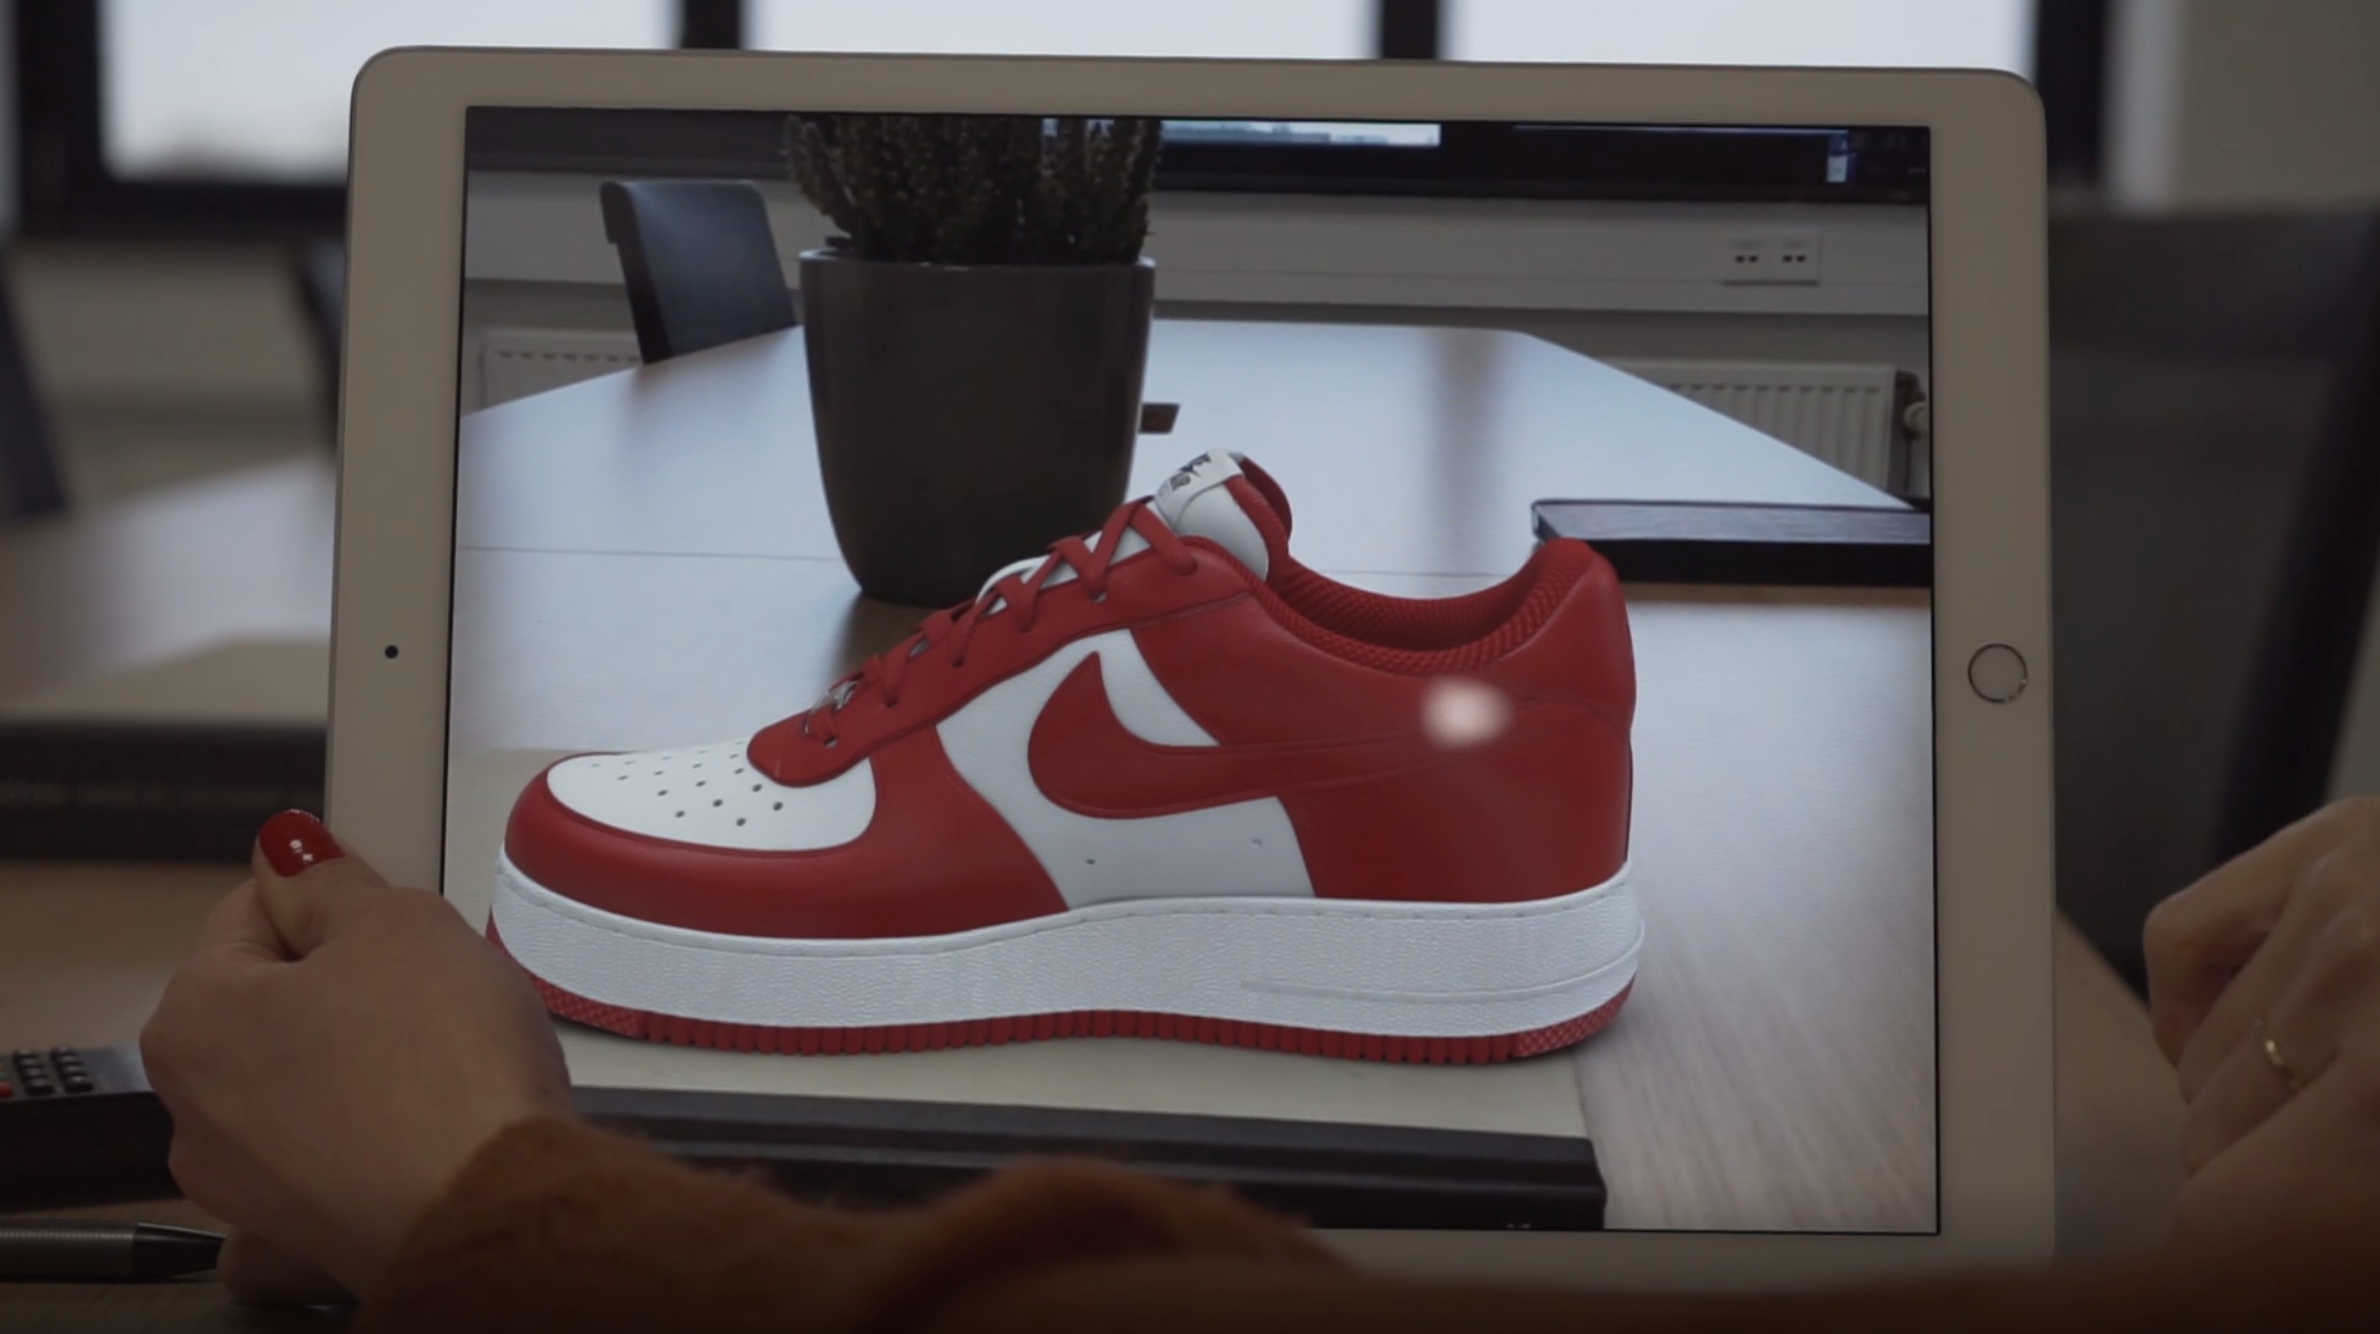 3d-configurator-online-Nike-Air-Force-1-Shoe-Amsterdam-customize-video